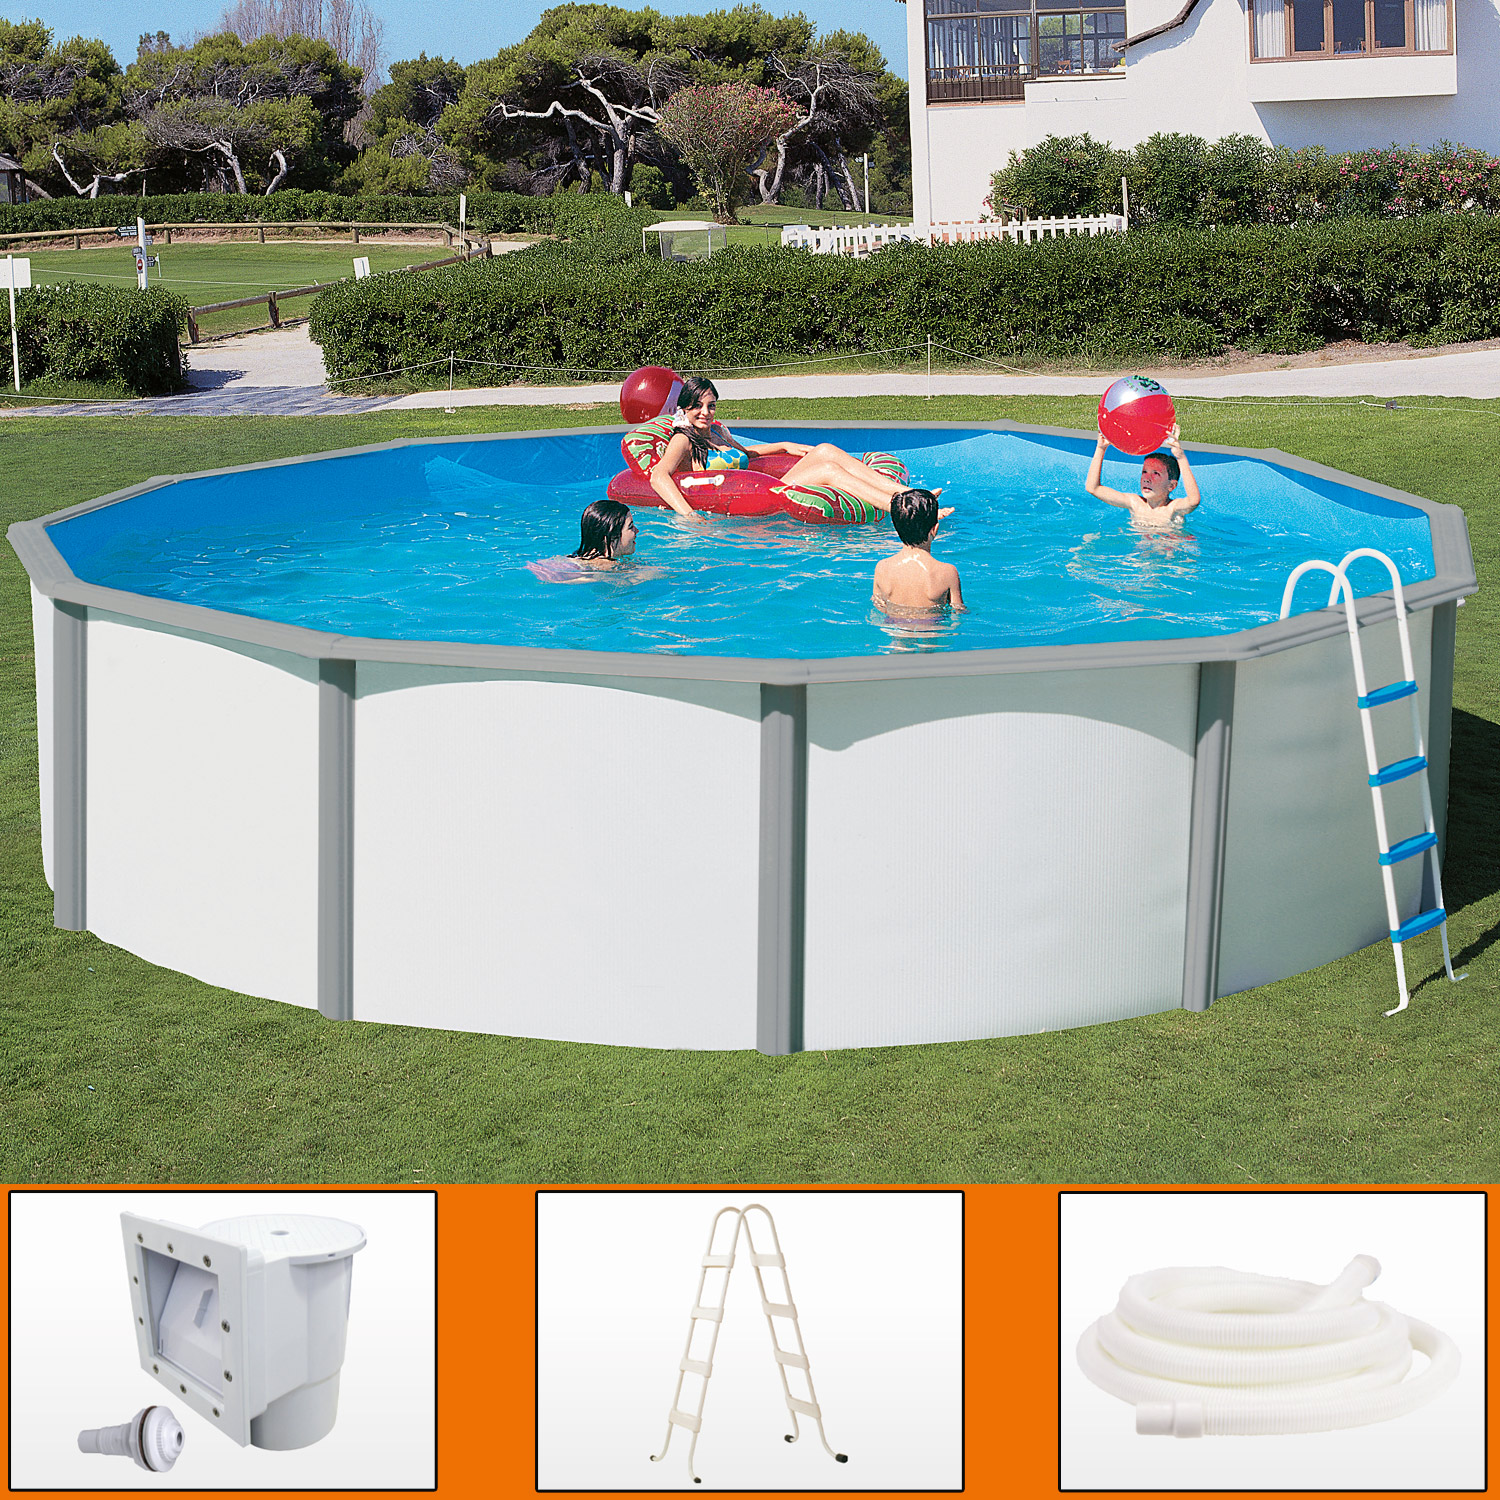 Swimming pool stahlwand ovalbecken swimmingpool 5 50 x 3 for Obi intex pool